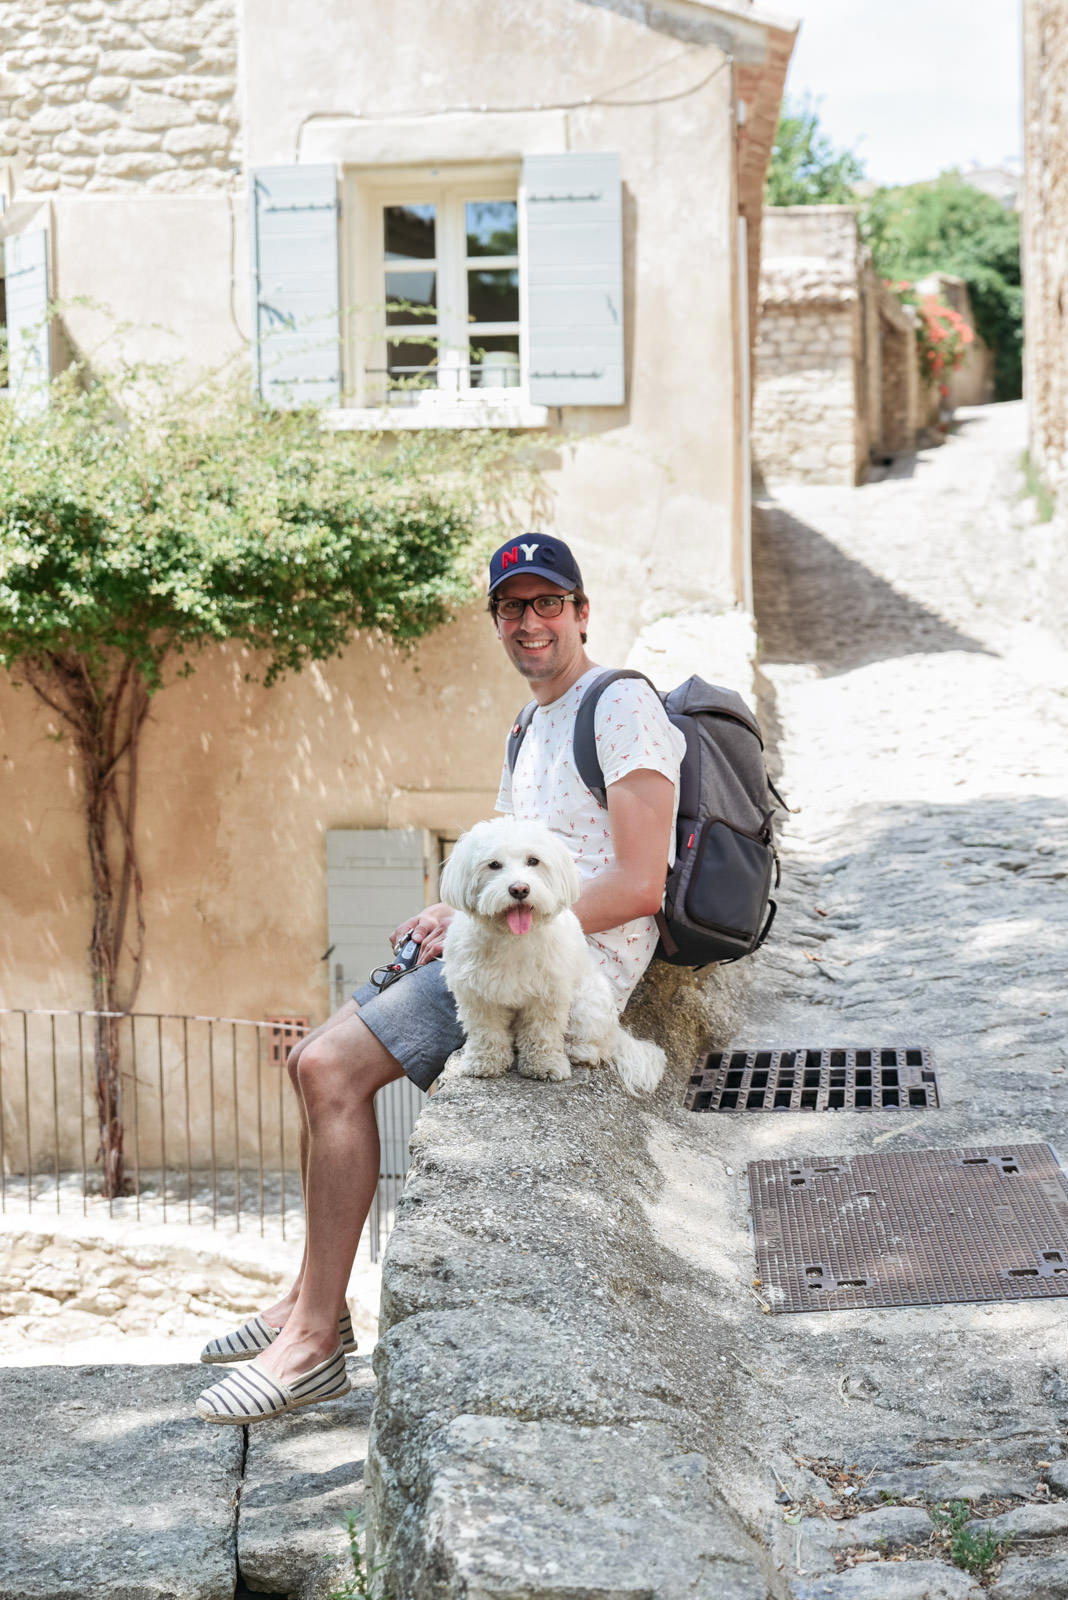 Blog-Mode-And-The-City-Lifestyle-Provence-Voyage-Gordes-16